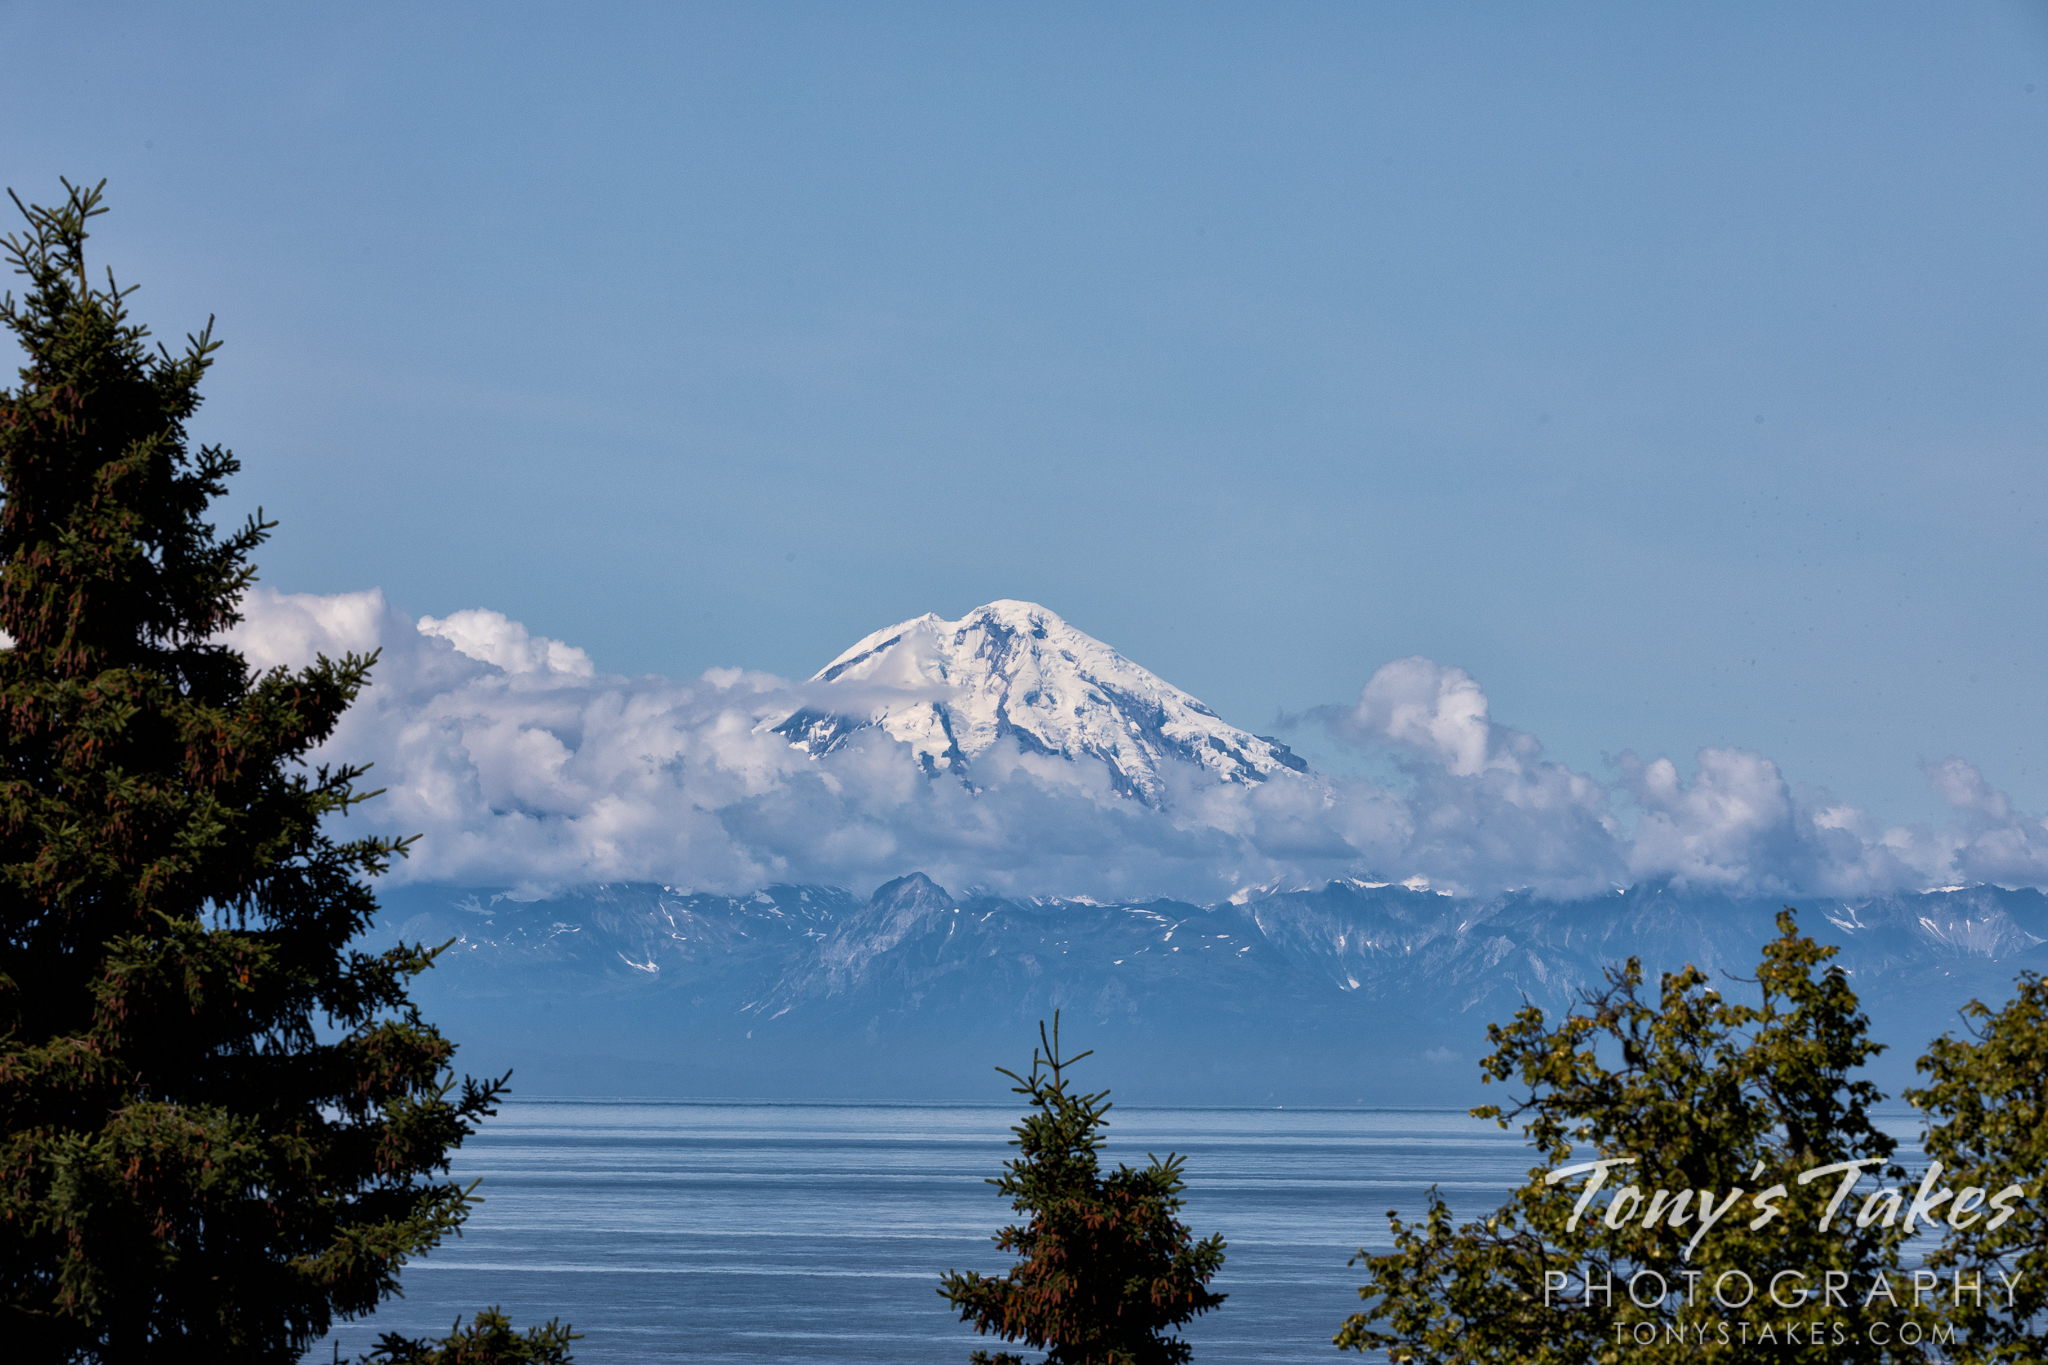 Mount Redoubt is seen from the other side of the Cook Inlet in Alaska. (© Tony's Takes)